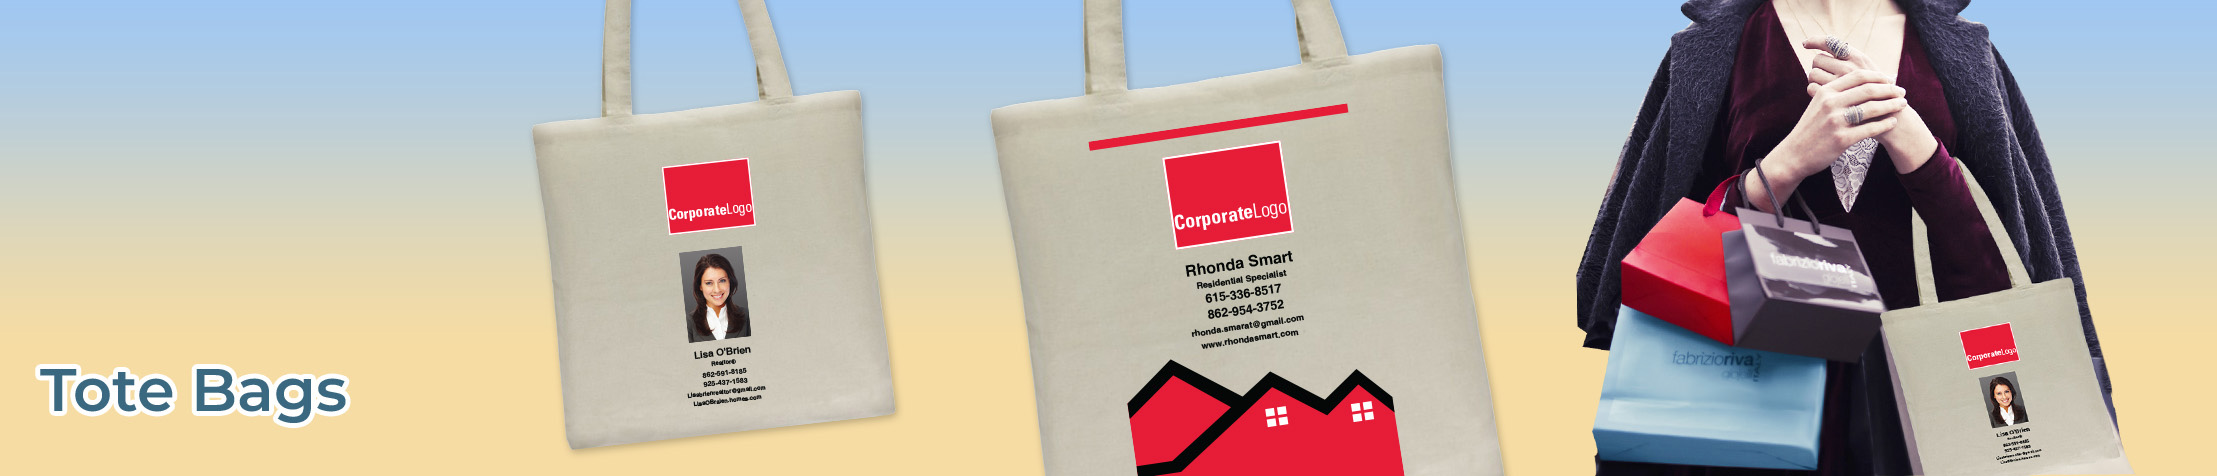 Real Living Real Estate Tote Bags - Real Living Real Estate  personalized realtor promotional products | BestPrintBuy.com